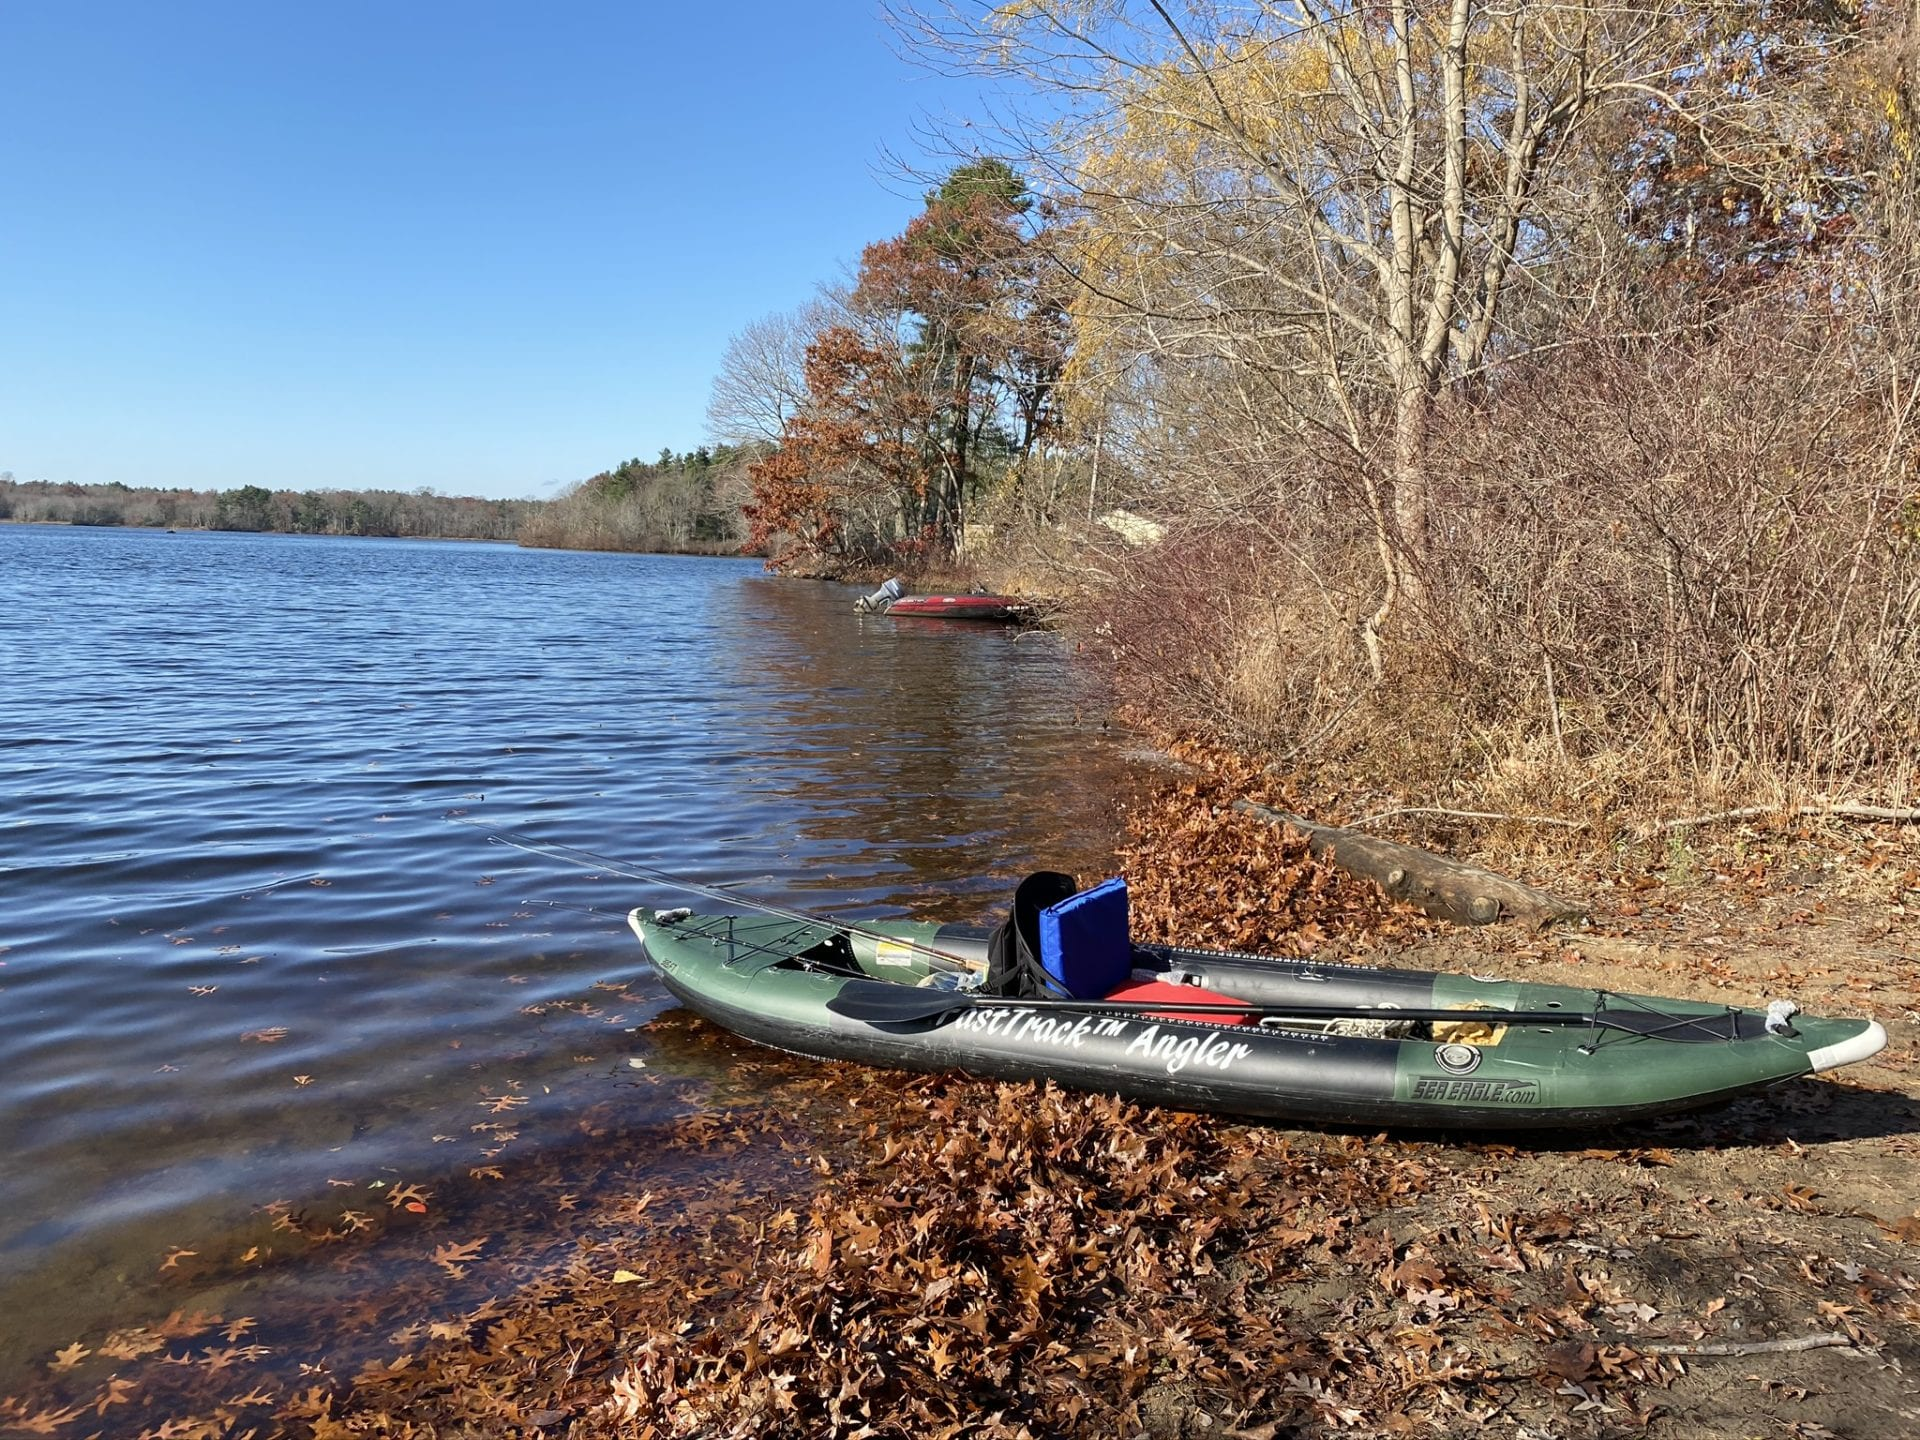 Tell us more about how you use and access Norton's beautiful lakes, rivers, and reservoirs by going to this link: bit.ly/norton-wateraccess